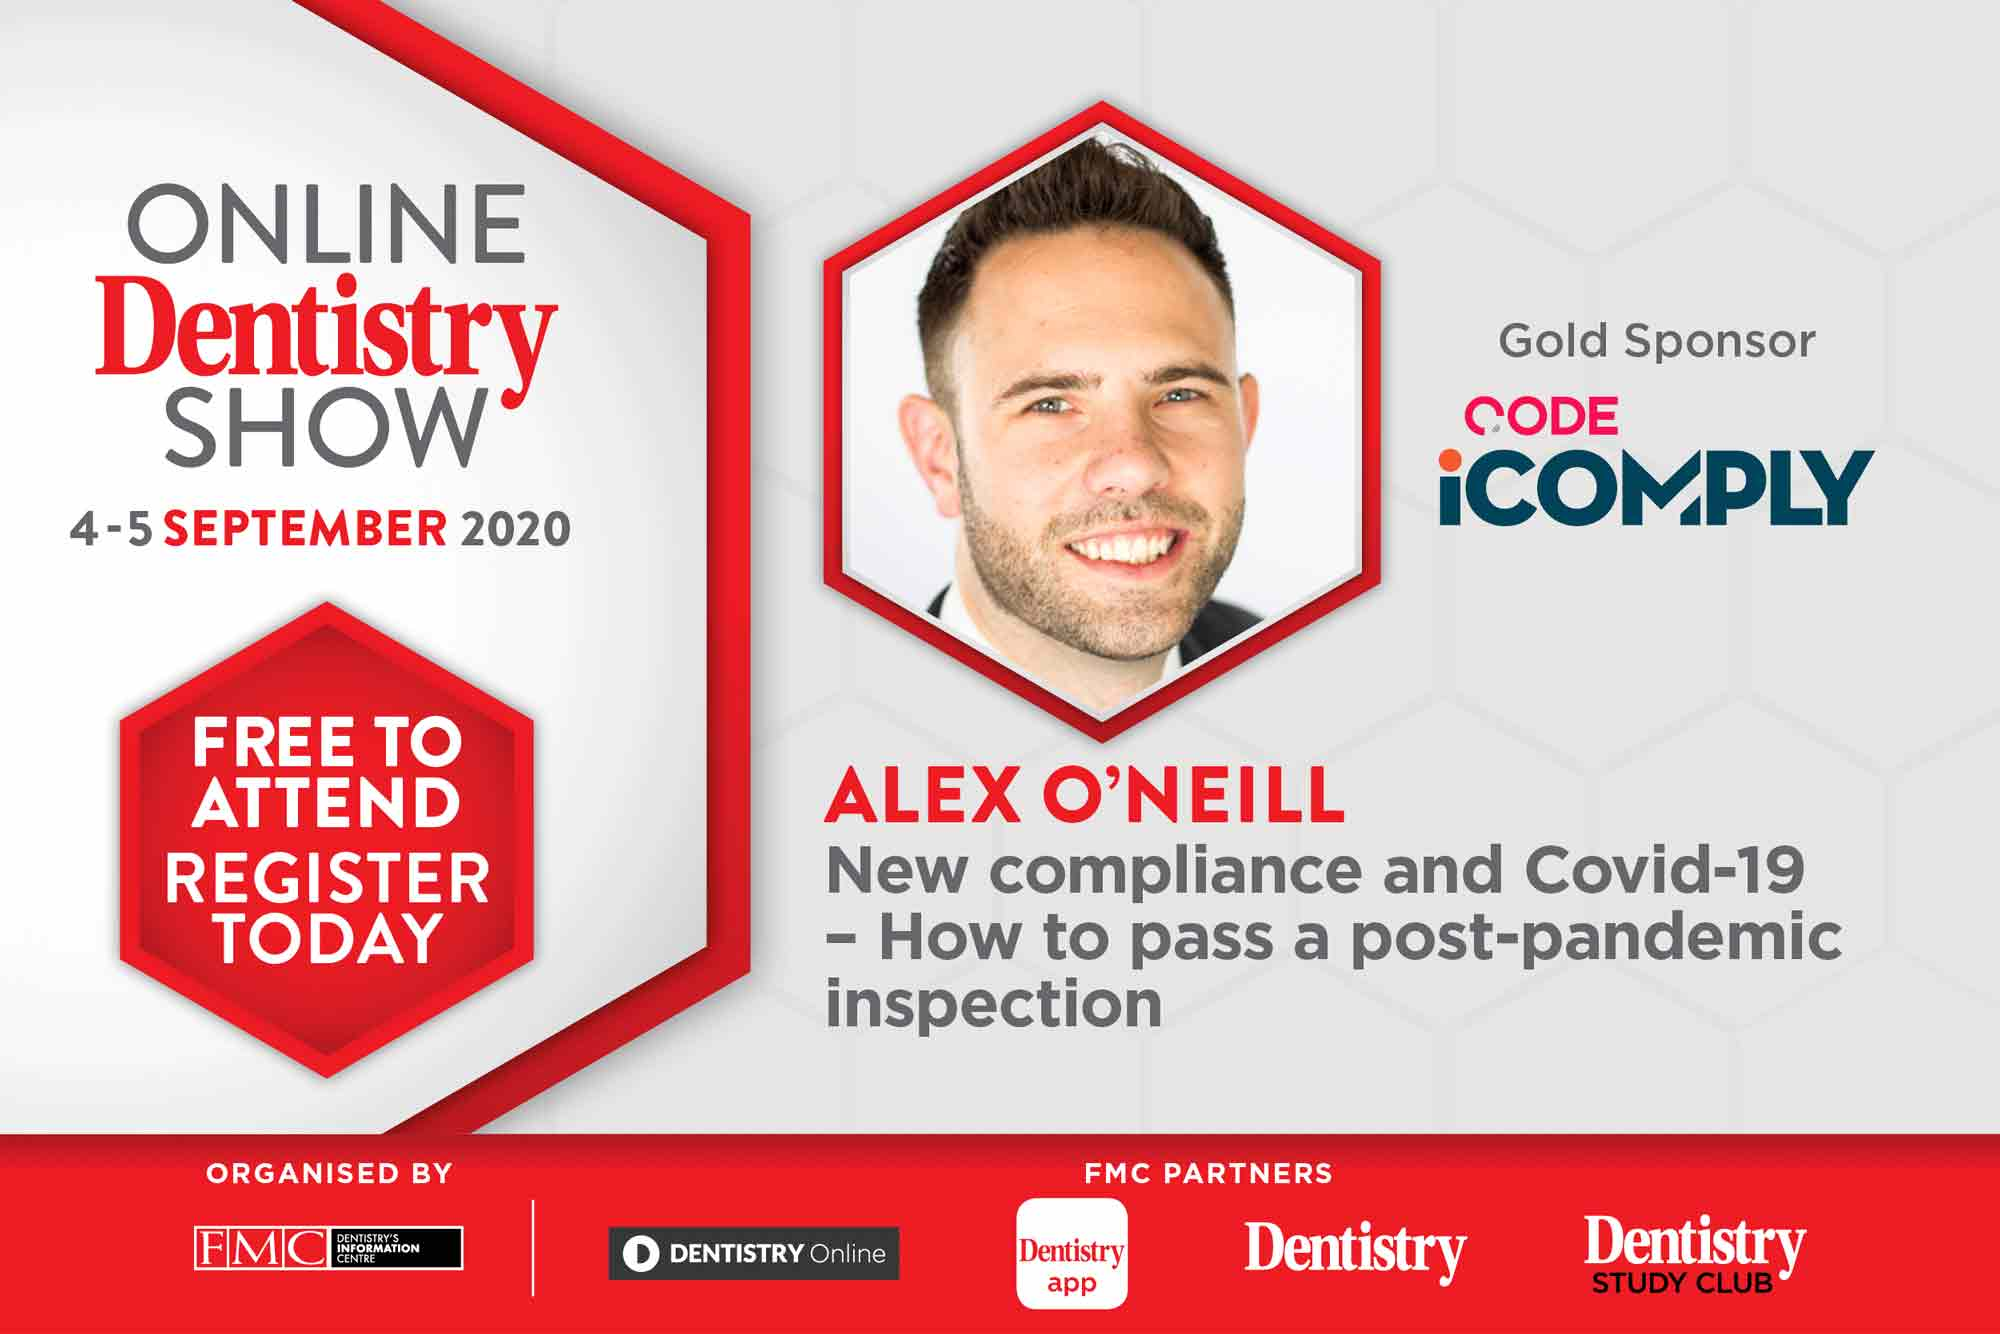 The Online Dentistry Show is putting on the very first virtual exhibition in UK dentistry with support from gold sponsors, CODE, and speaker Alex O'Neill